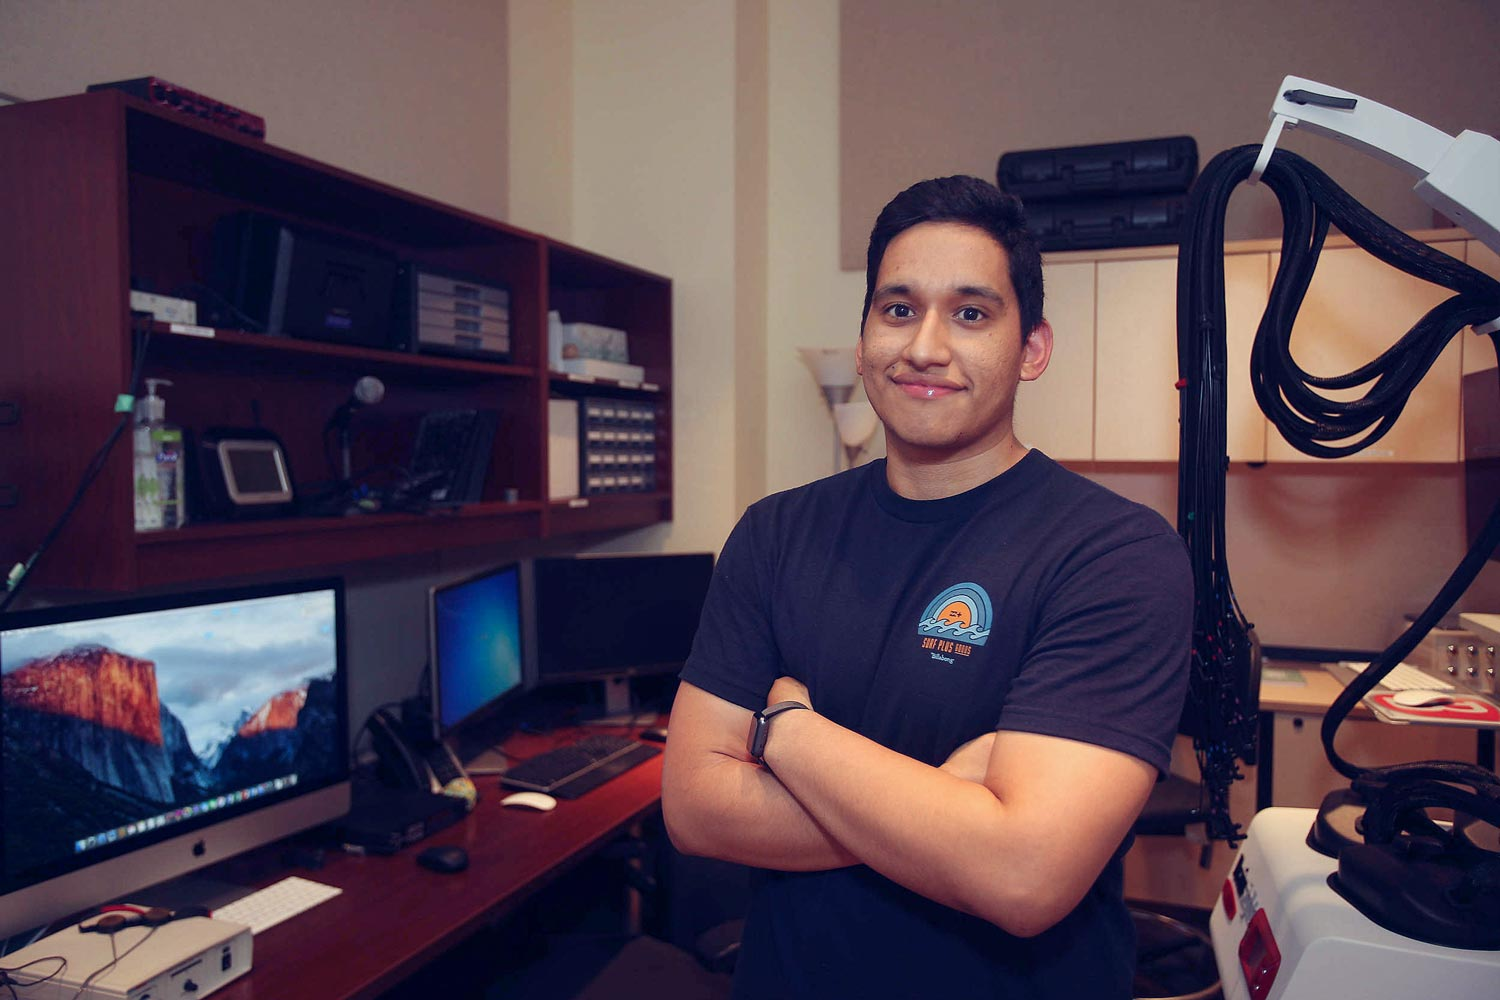 Jesus Gomez will graduate with a degree in speech communications disorders from the Curry School of Education.